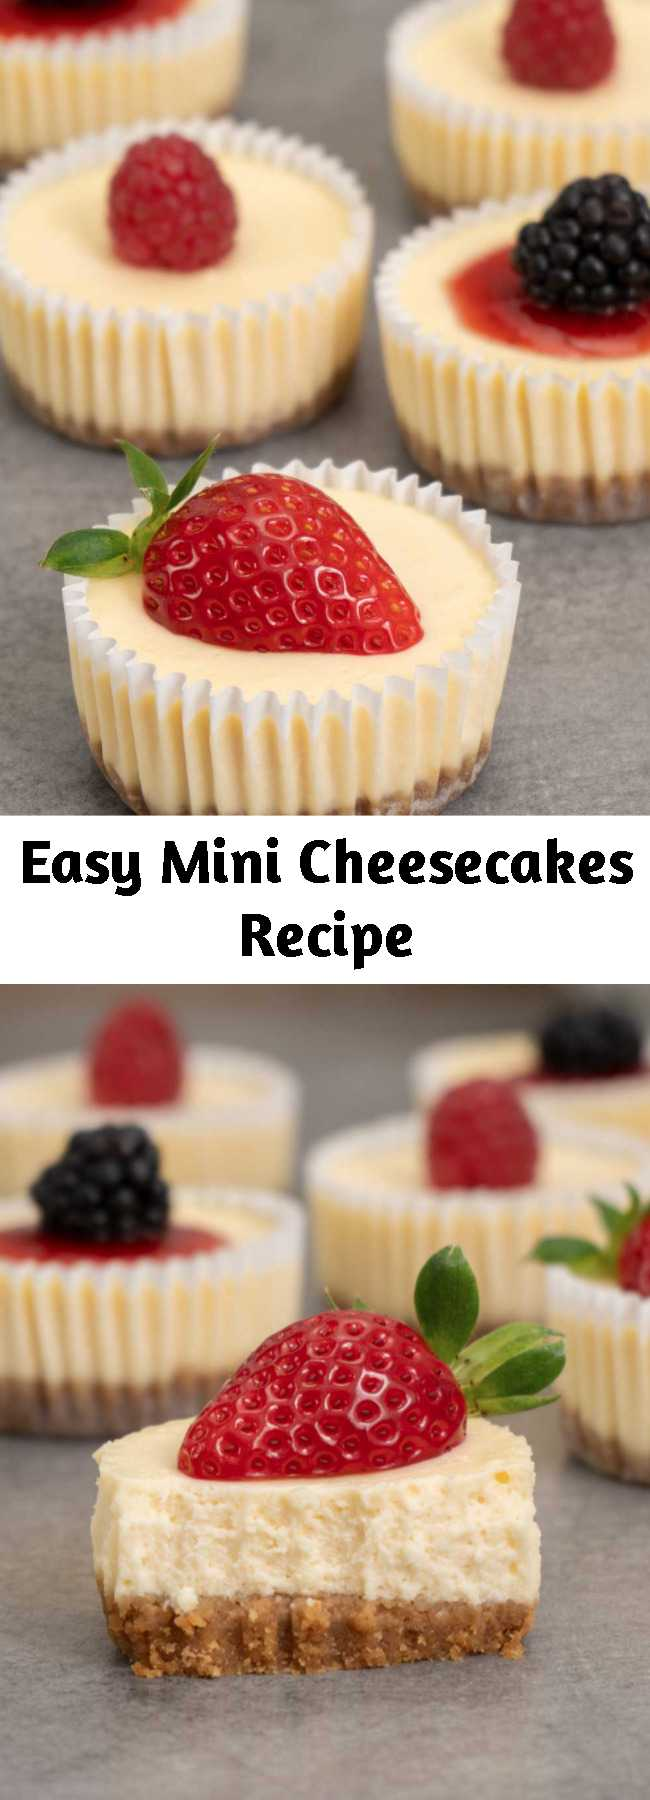 Easy Mini Cheesecakes Recipe - Inspired by Cheesecake Factory, these mini cheesecakes have super creamy texture and taste. They are easy to make and great to take to parties and gatherings. Enjoy them as they are or with your favourite marmalade and berries. Yum!